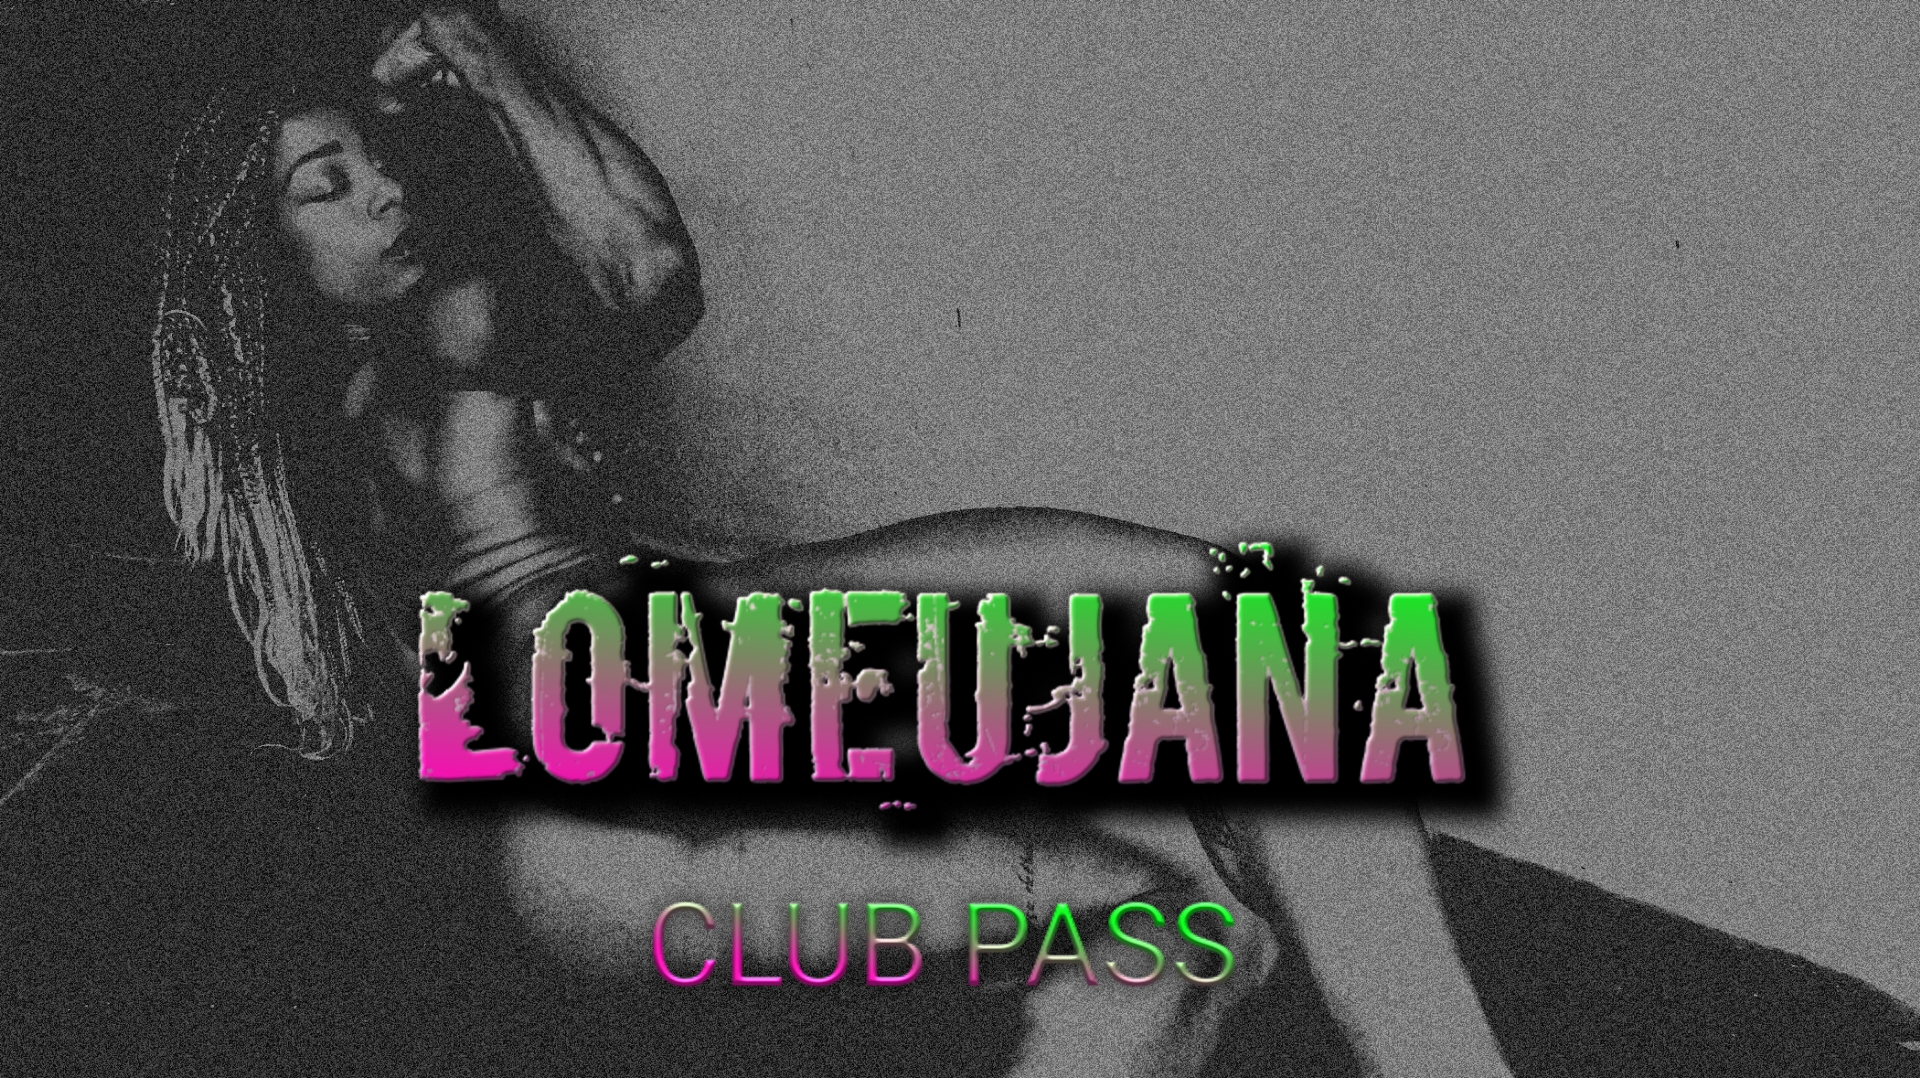 Lomeujana Club Pass